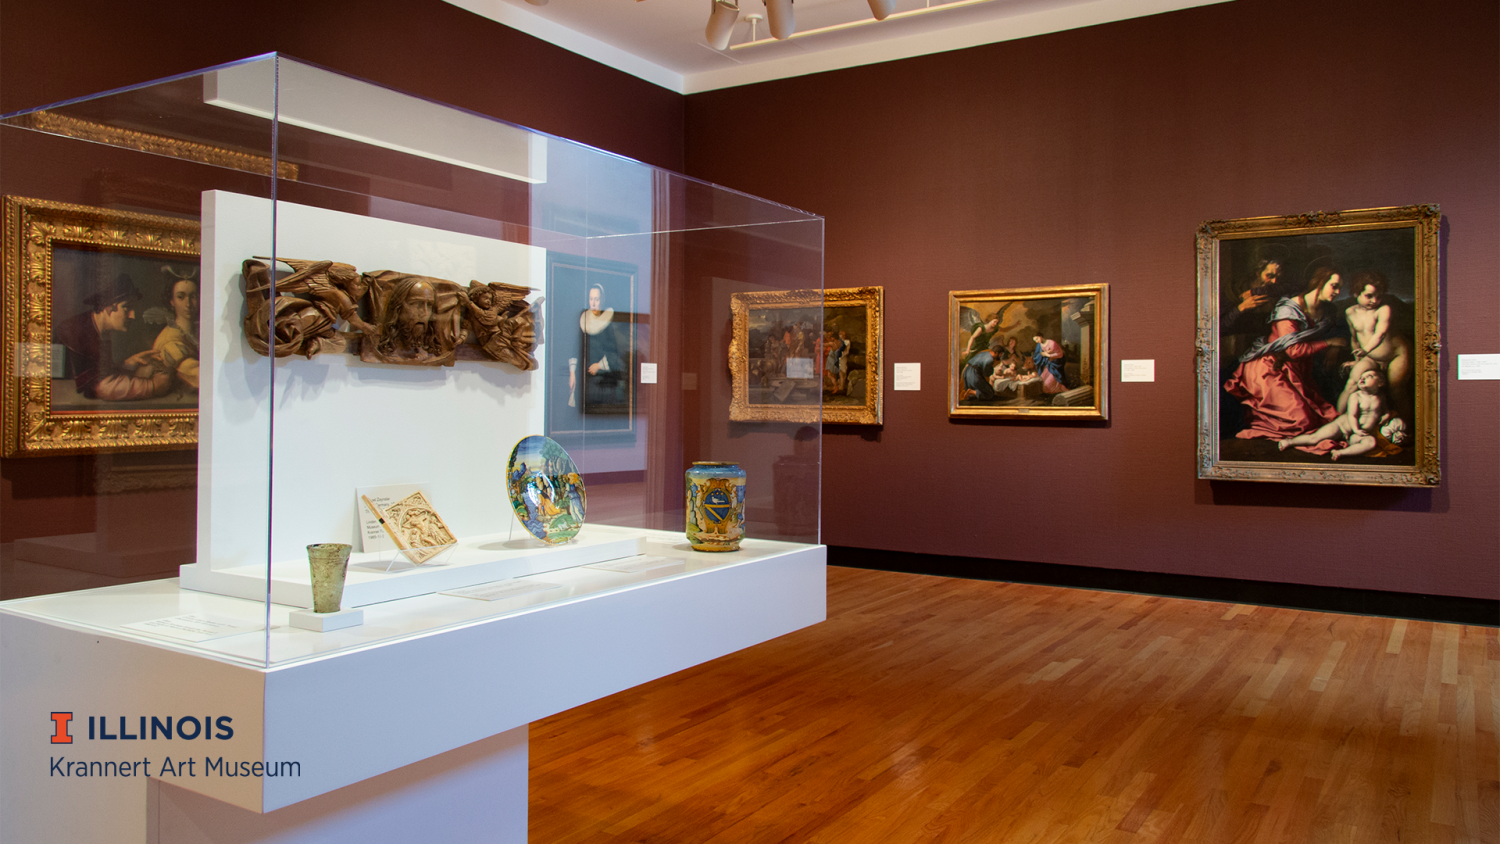 Gallery of European art with a white case with small objects on the left side and a wall with eighteenth and nineteenth century paintings in front of you. The colors in the paintings are rich, with ornate gold frames, and walls are deep burgundy color.